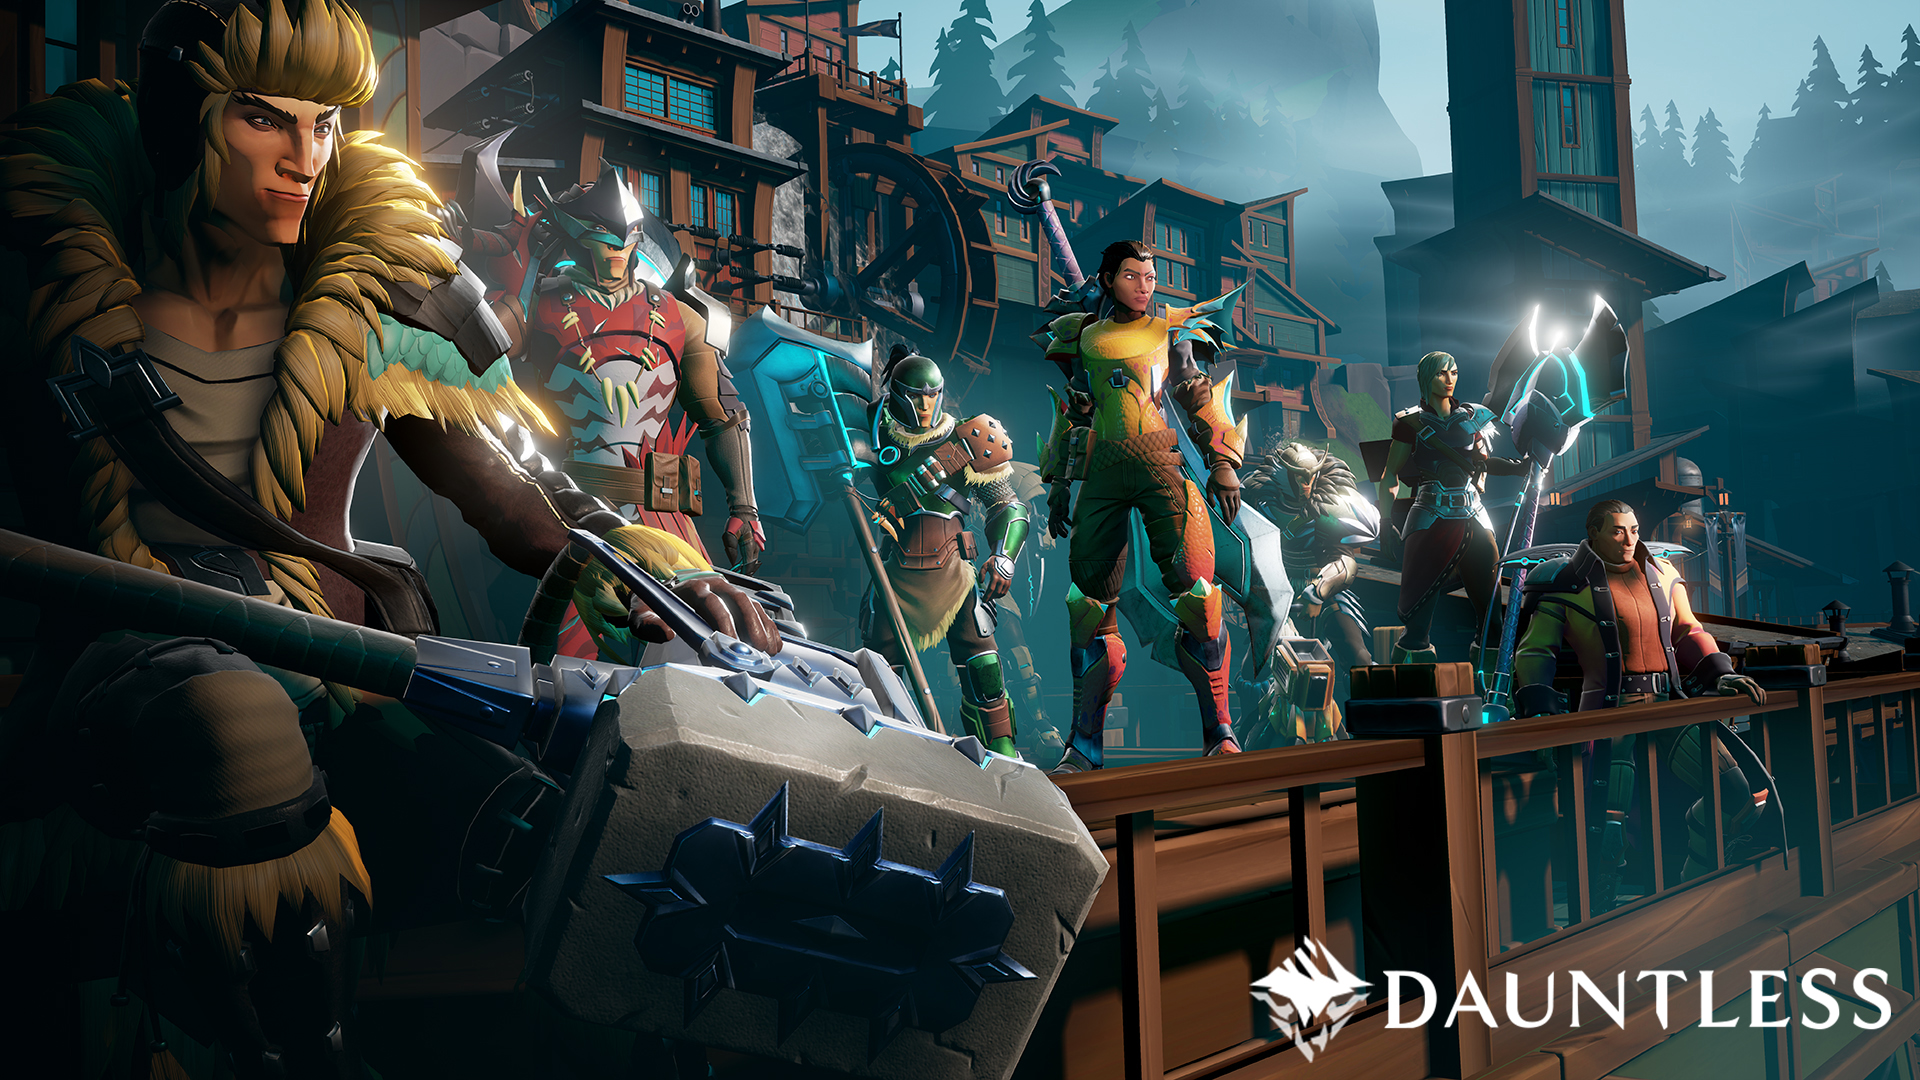 Ya está disponible para descargar la beta de Dauntless en PC Dauntless-3820523